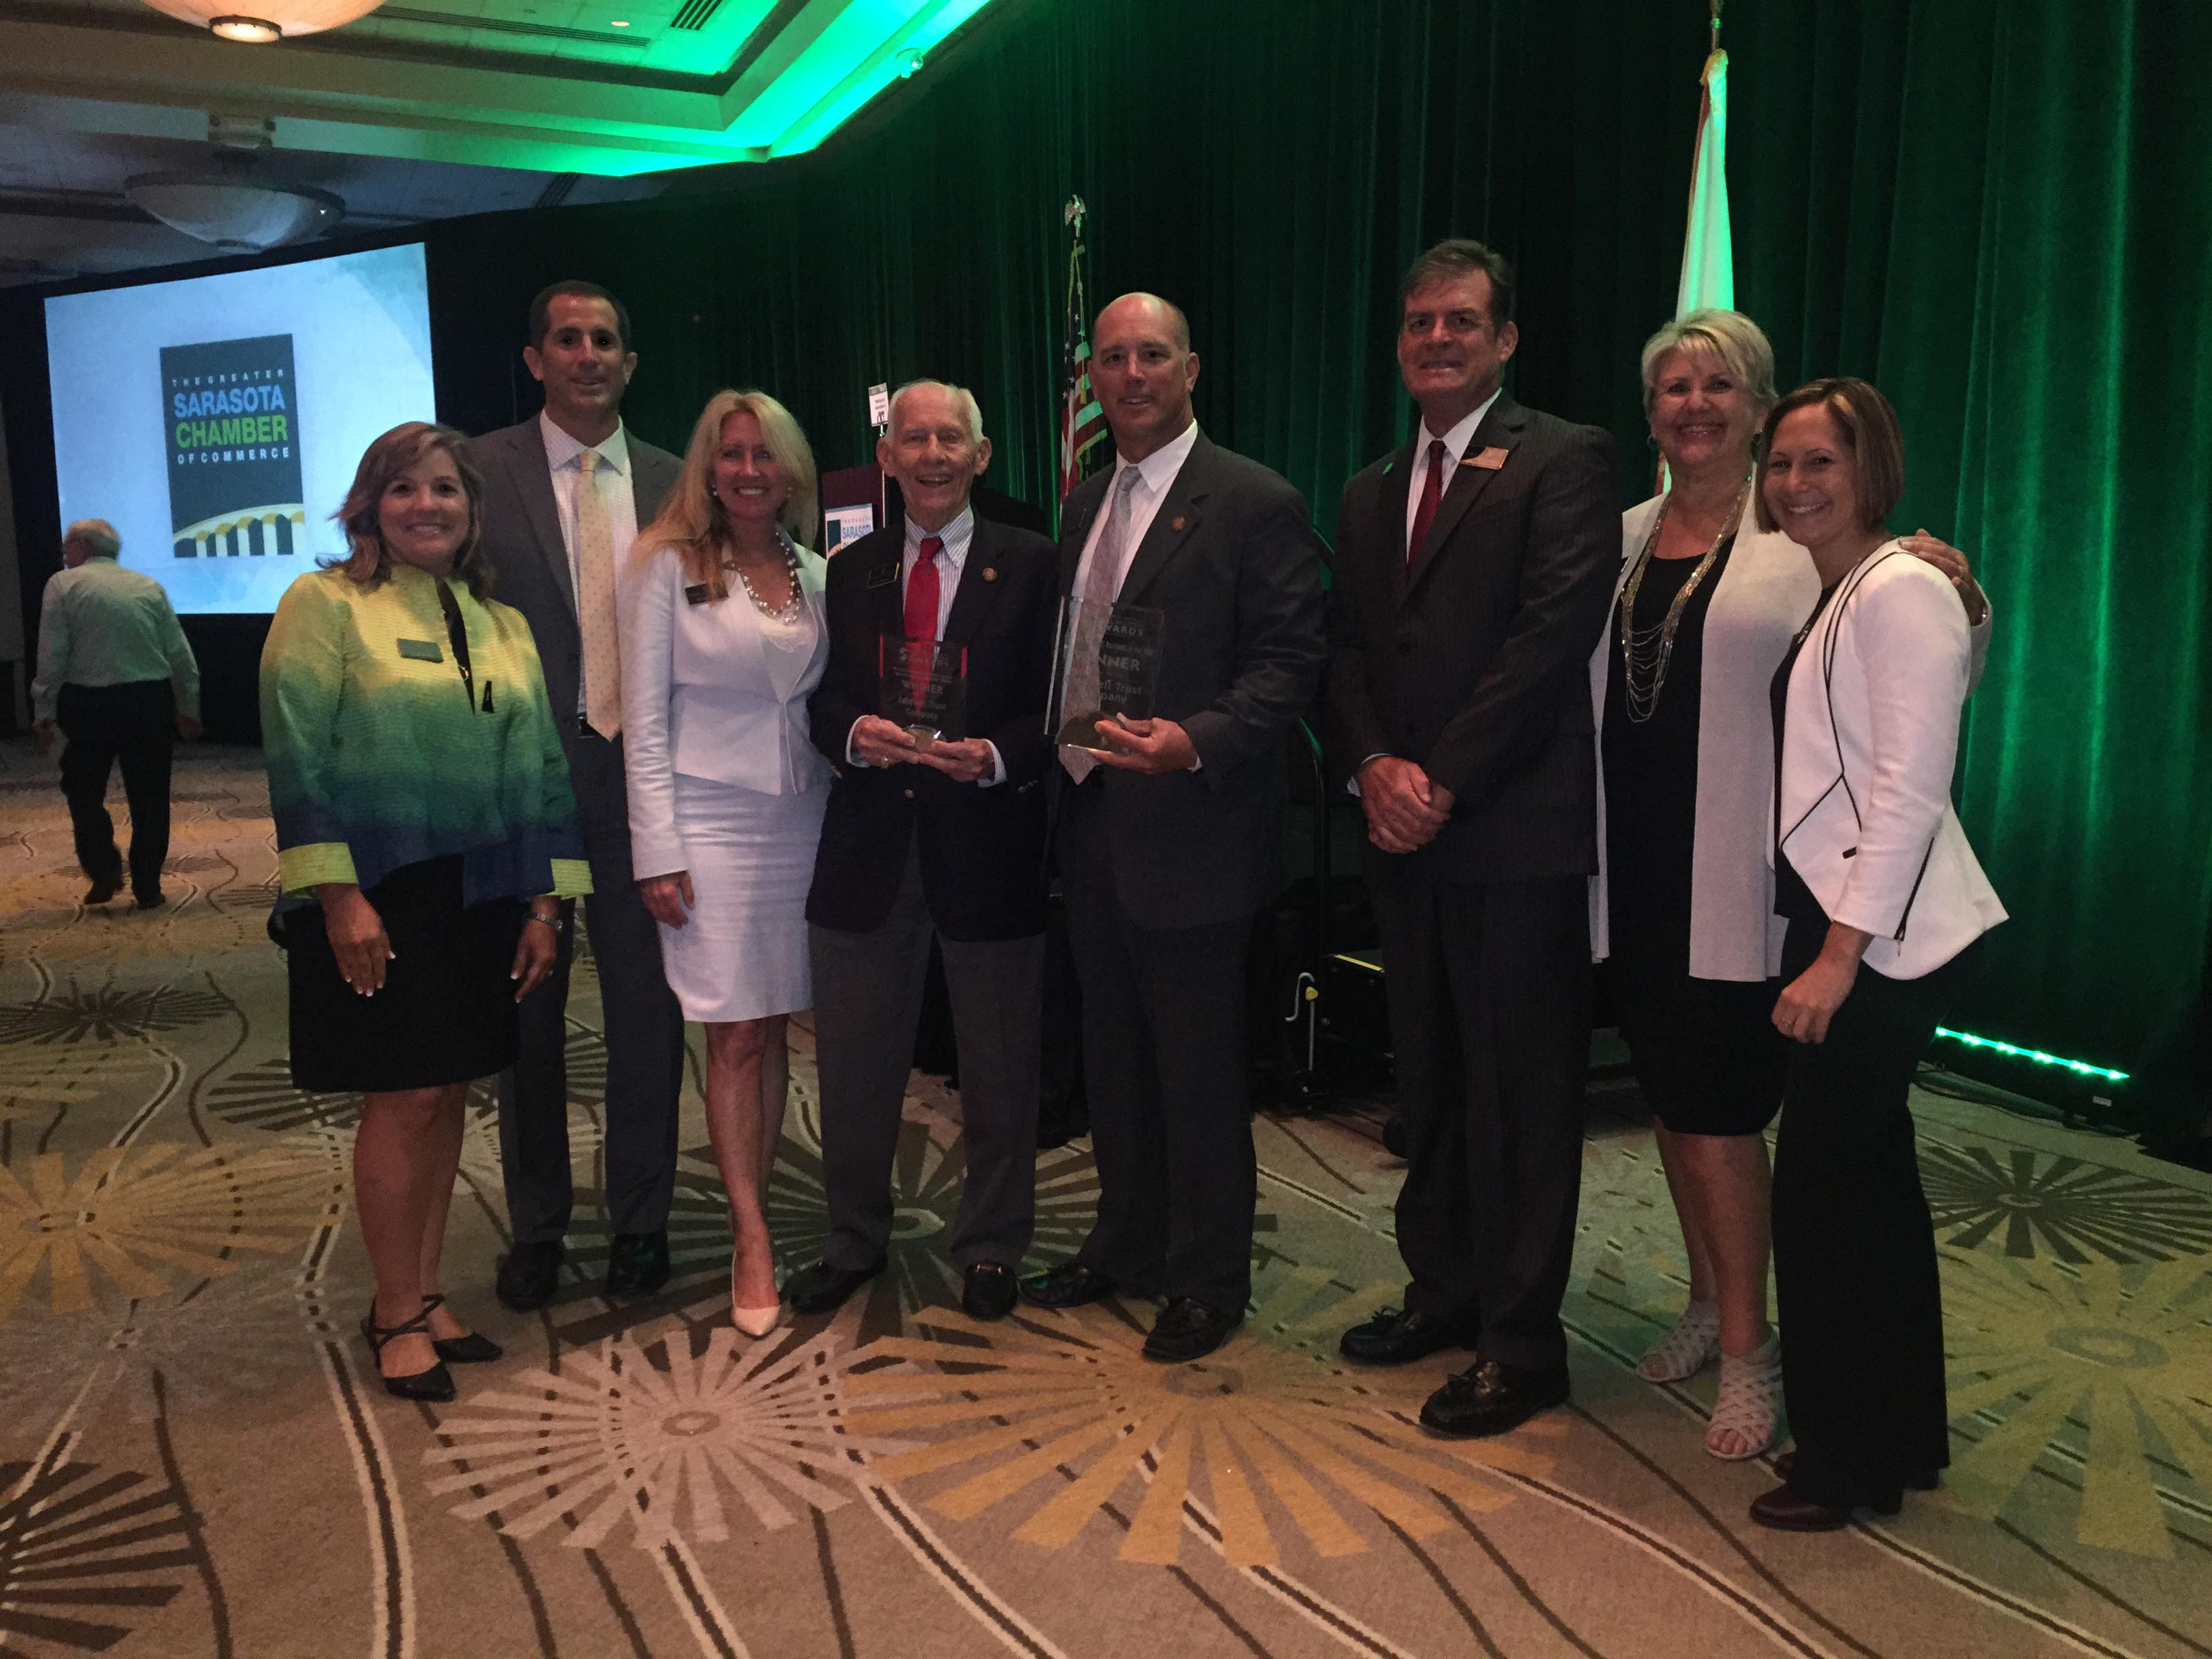 Caldwell-Trust-Company-wins-twice-at-Greater-Sarasota-Chamber-of-Commerce-awards-luncheon.jpg